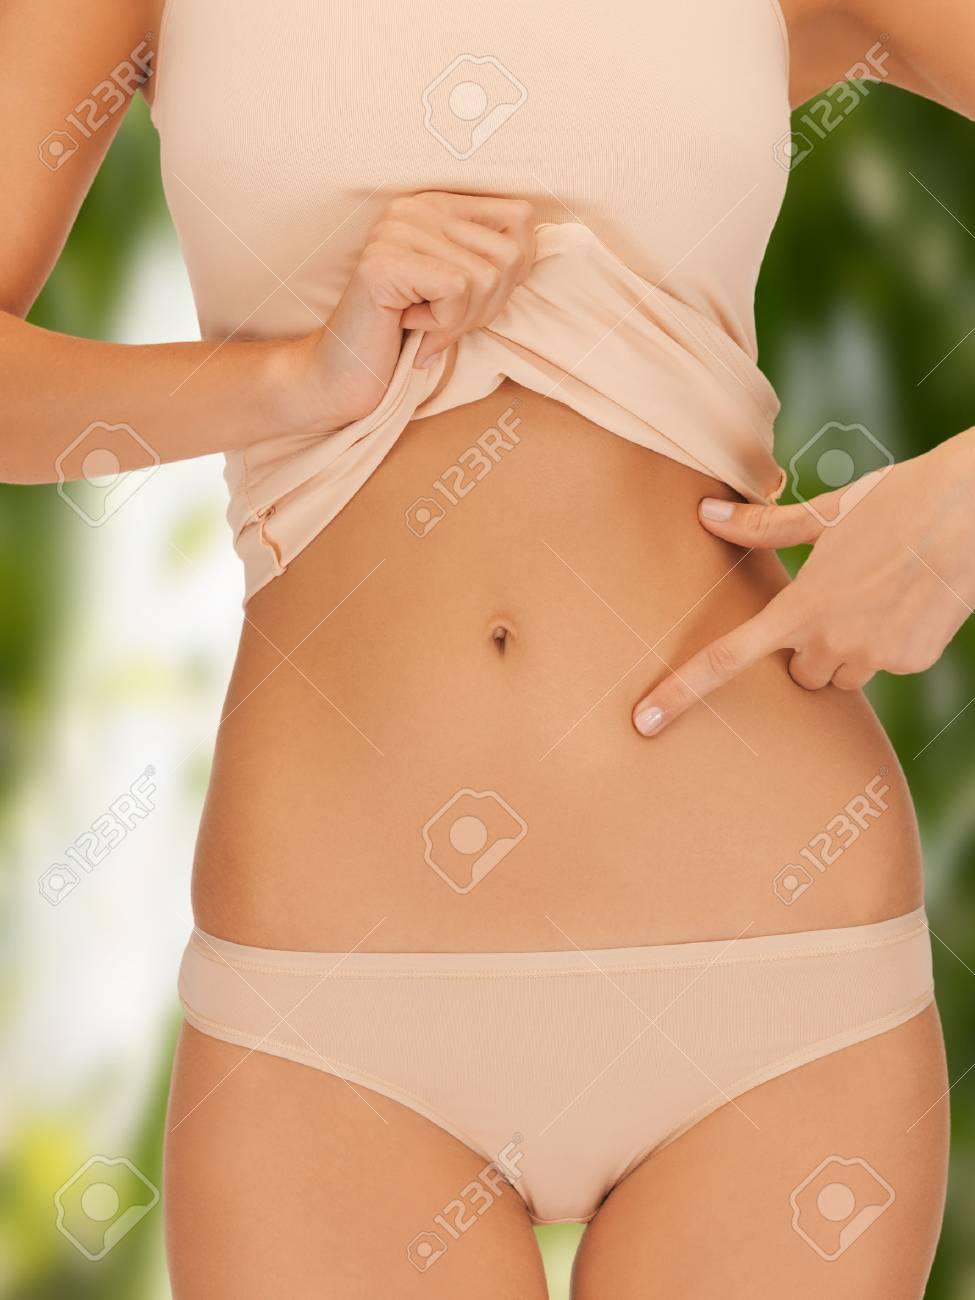 diet, slimming, health, beauty, eco, bio, pregnancy concept - woman pointing at her abs over green Stock Photo - 22380233